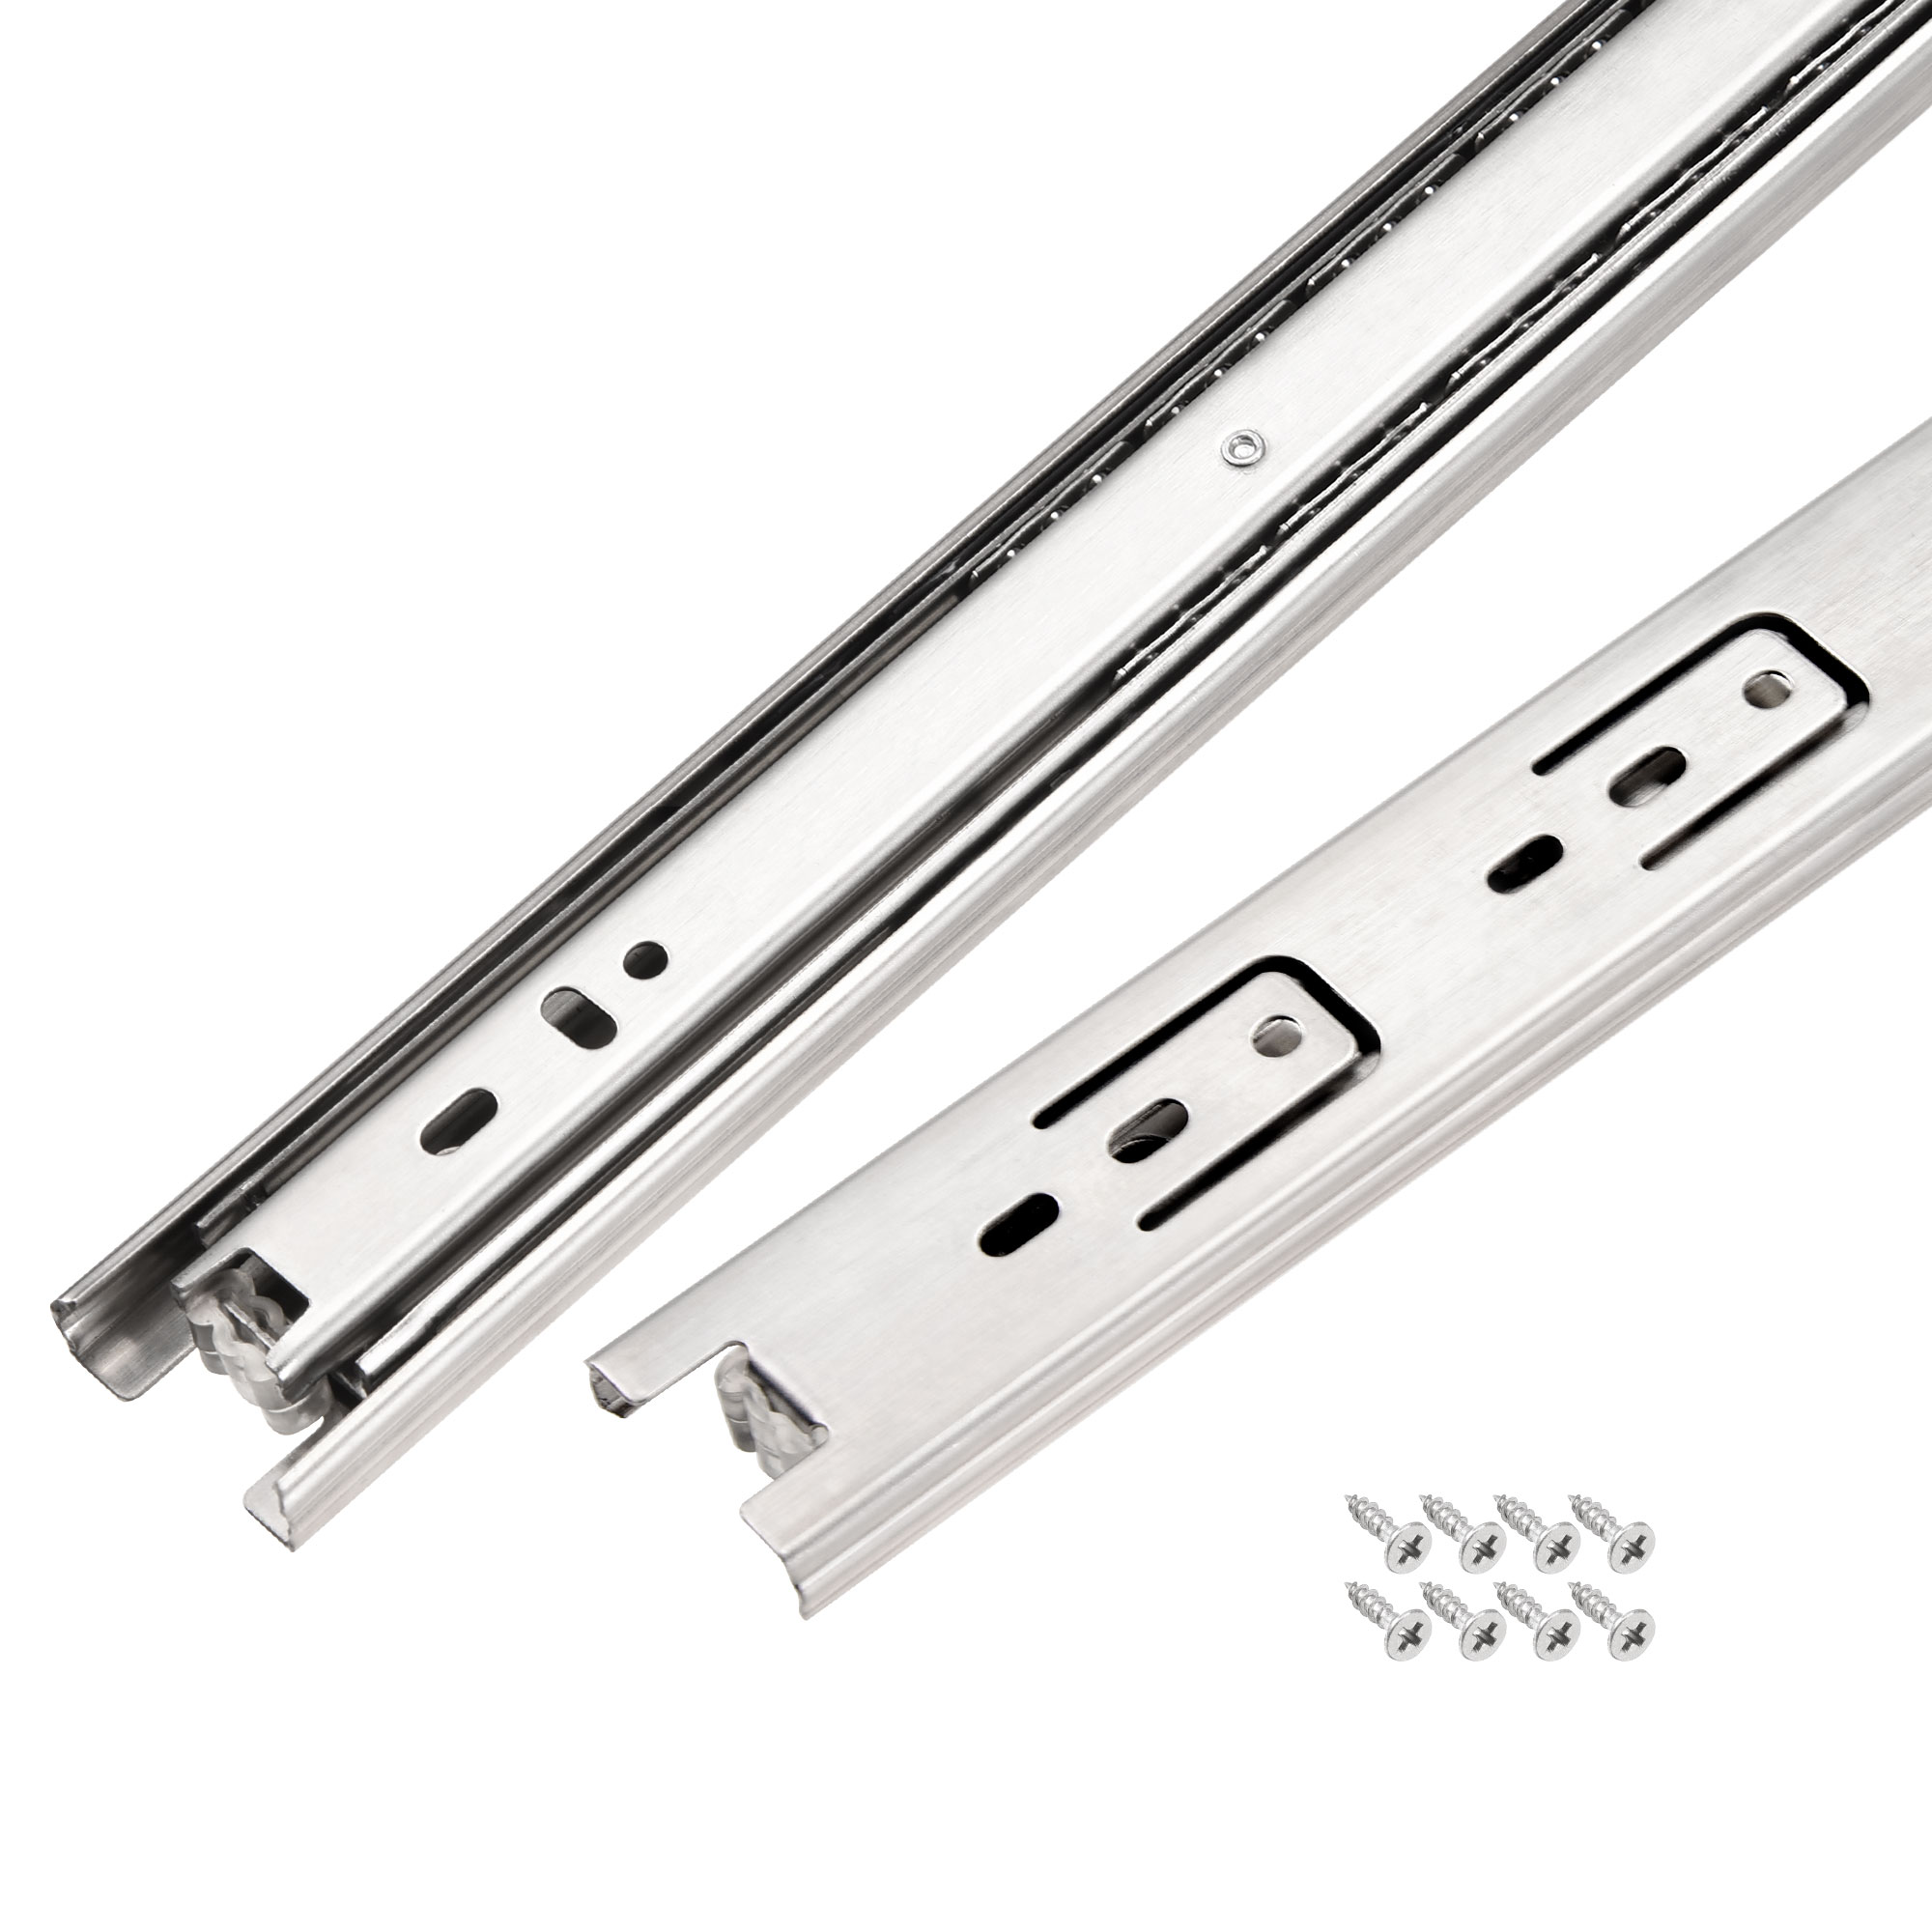 19.7Inch Drawer Slides Ball Bearing Slide Track Rail 35mm Wide 3 Sections 1 Pair